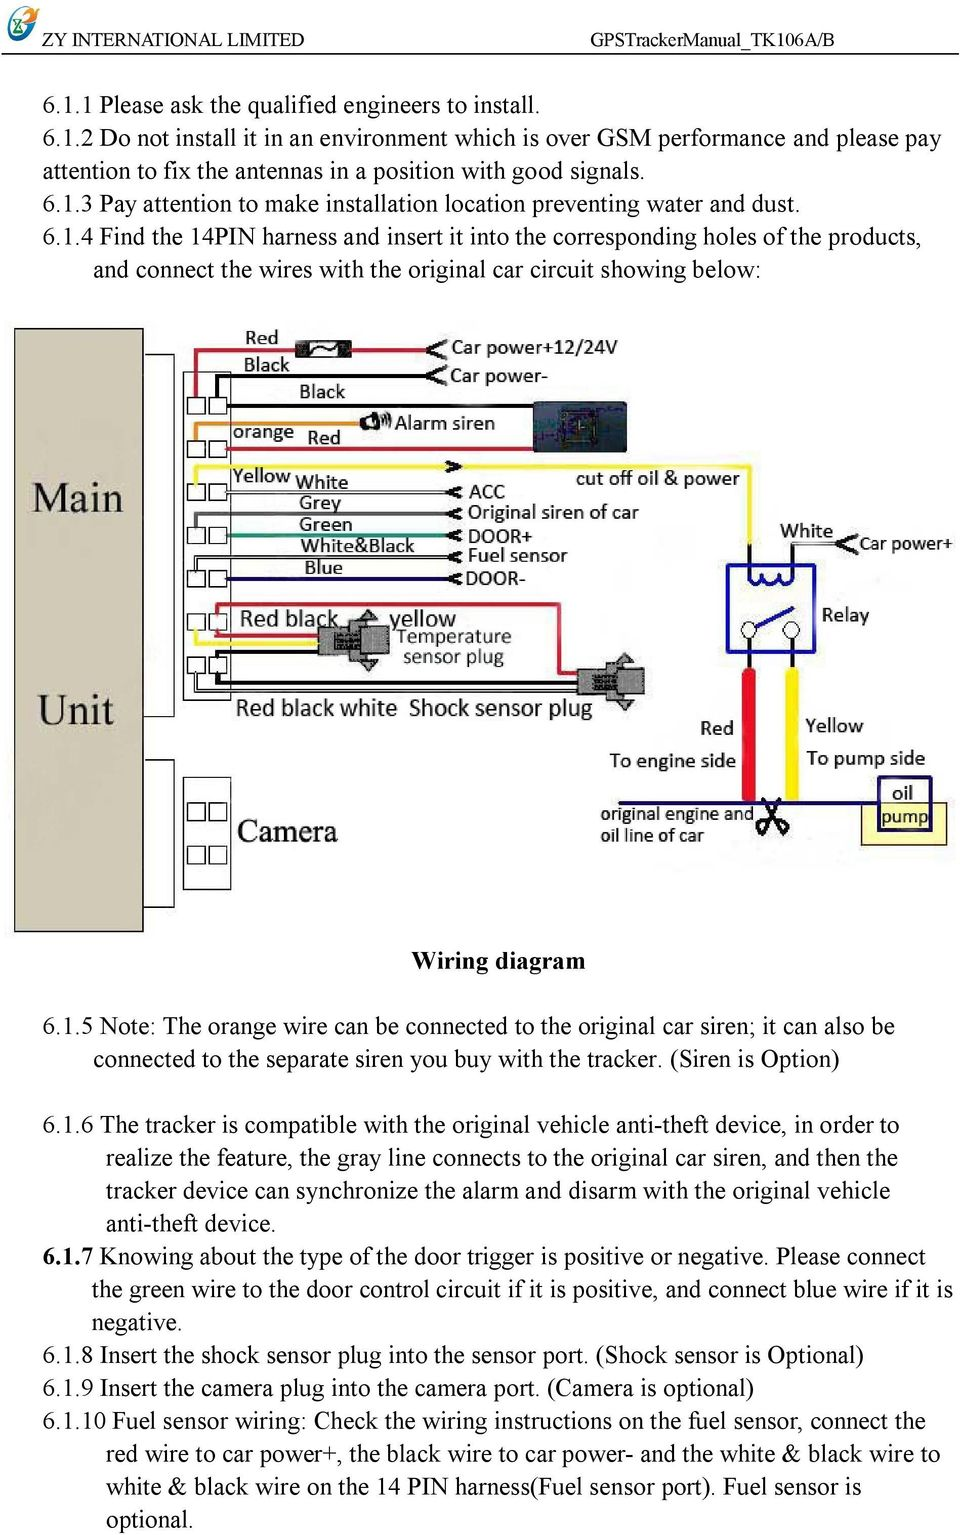 1.5 Note: The orange wire can be connected to the original car siren; it